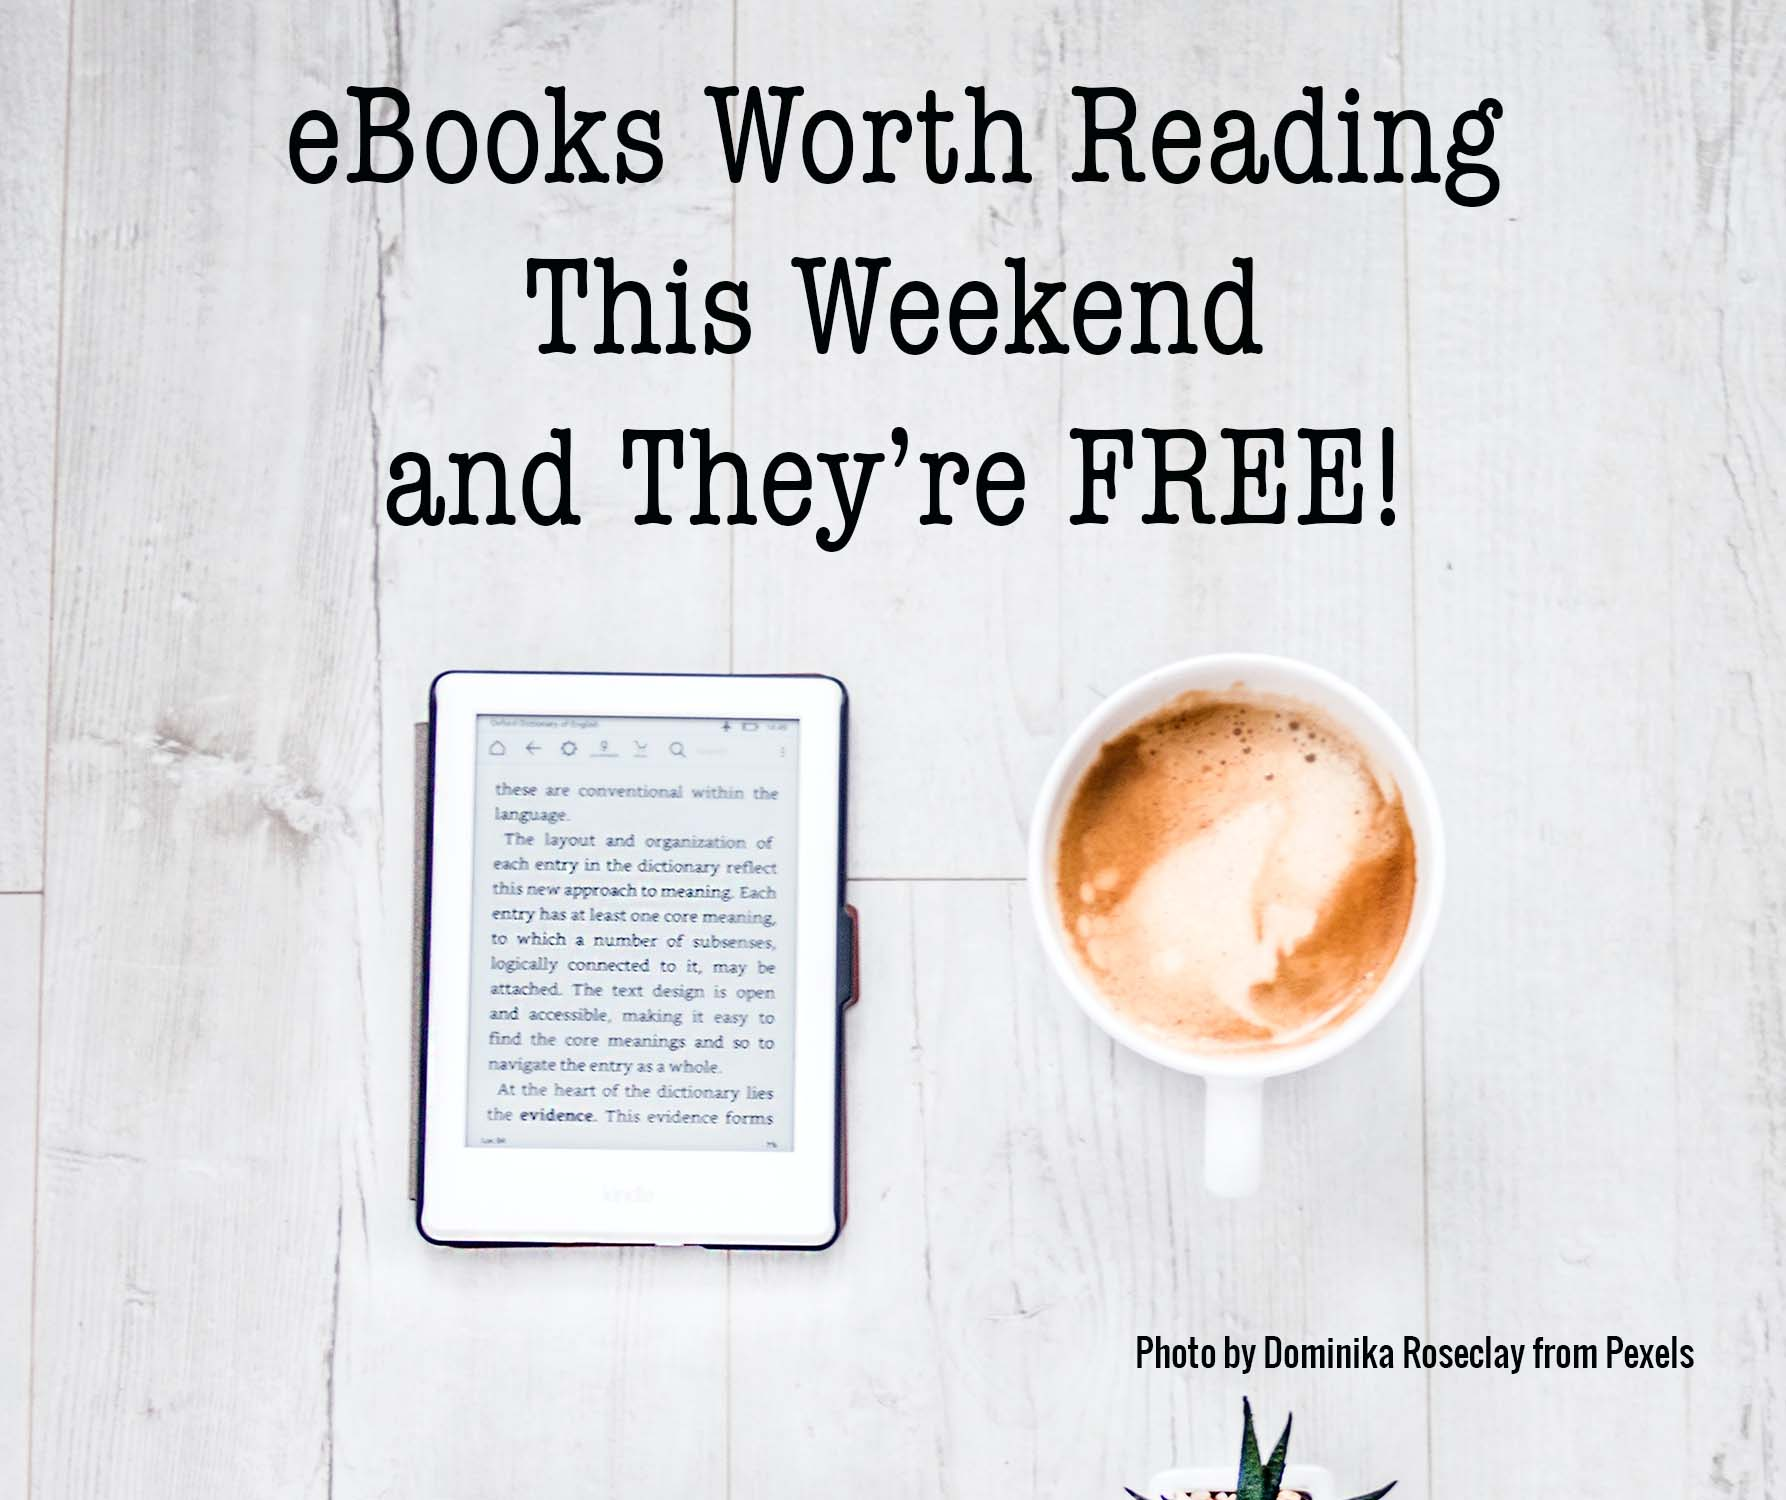 eBooks worth reading